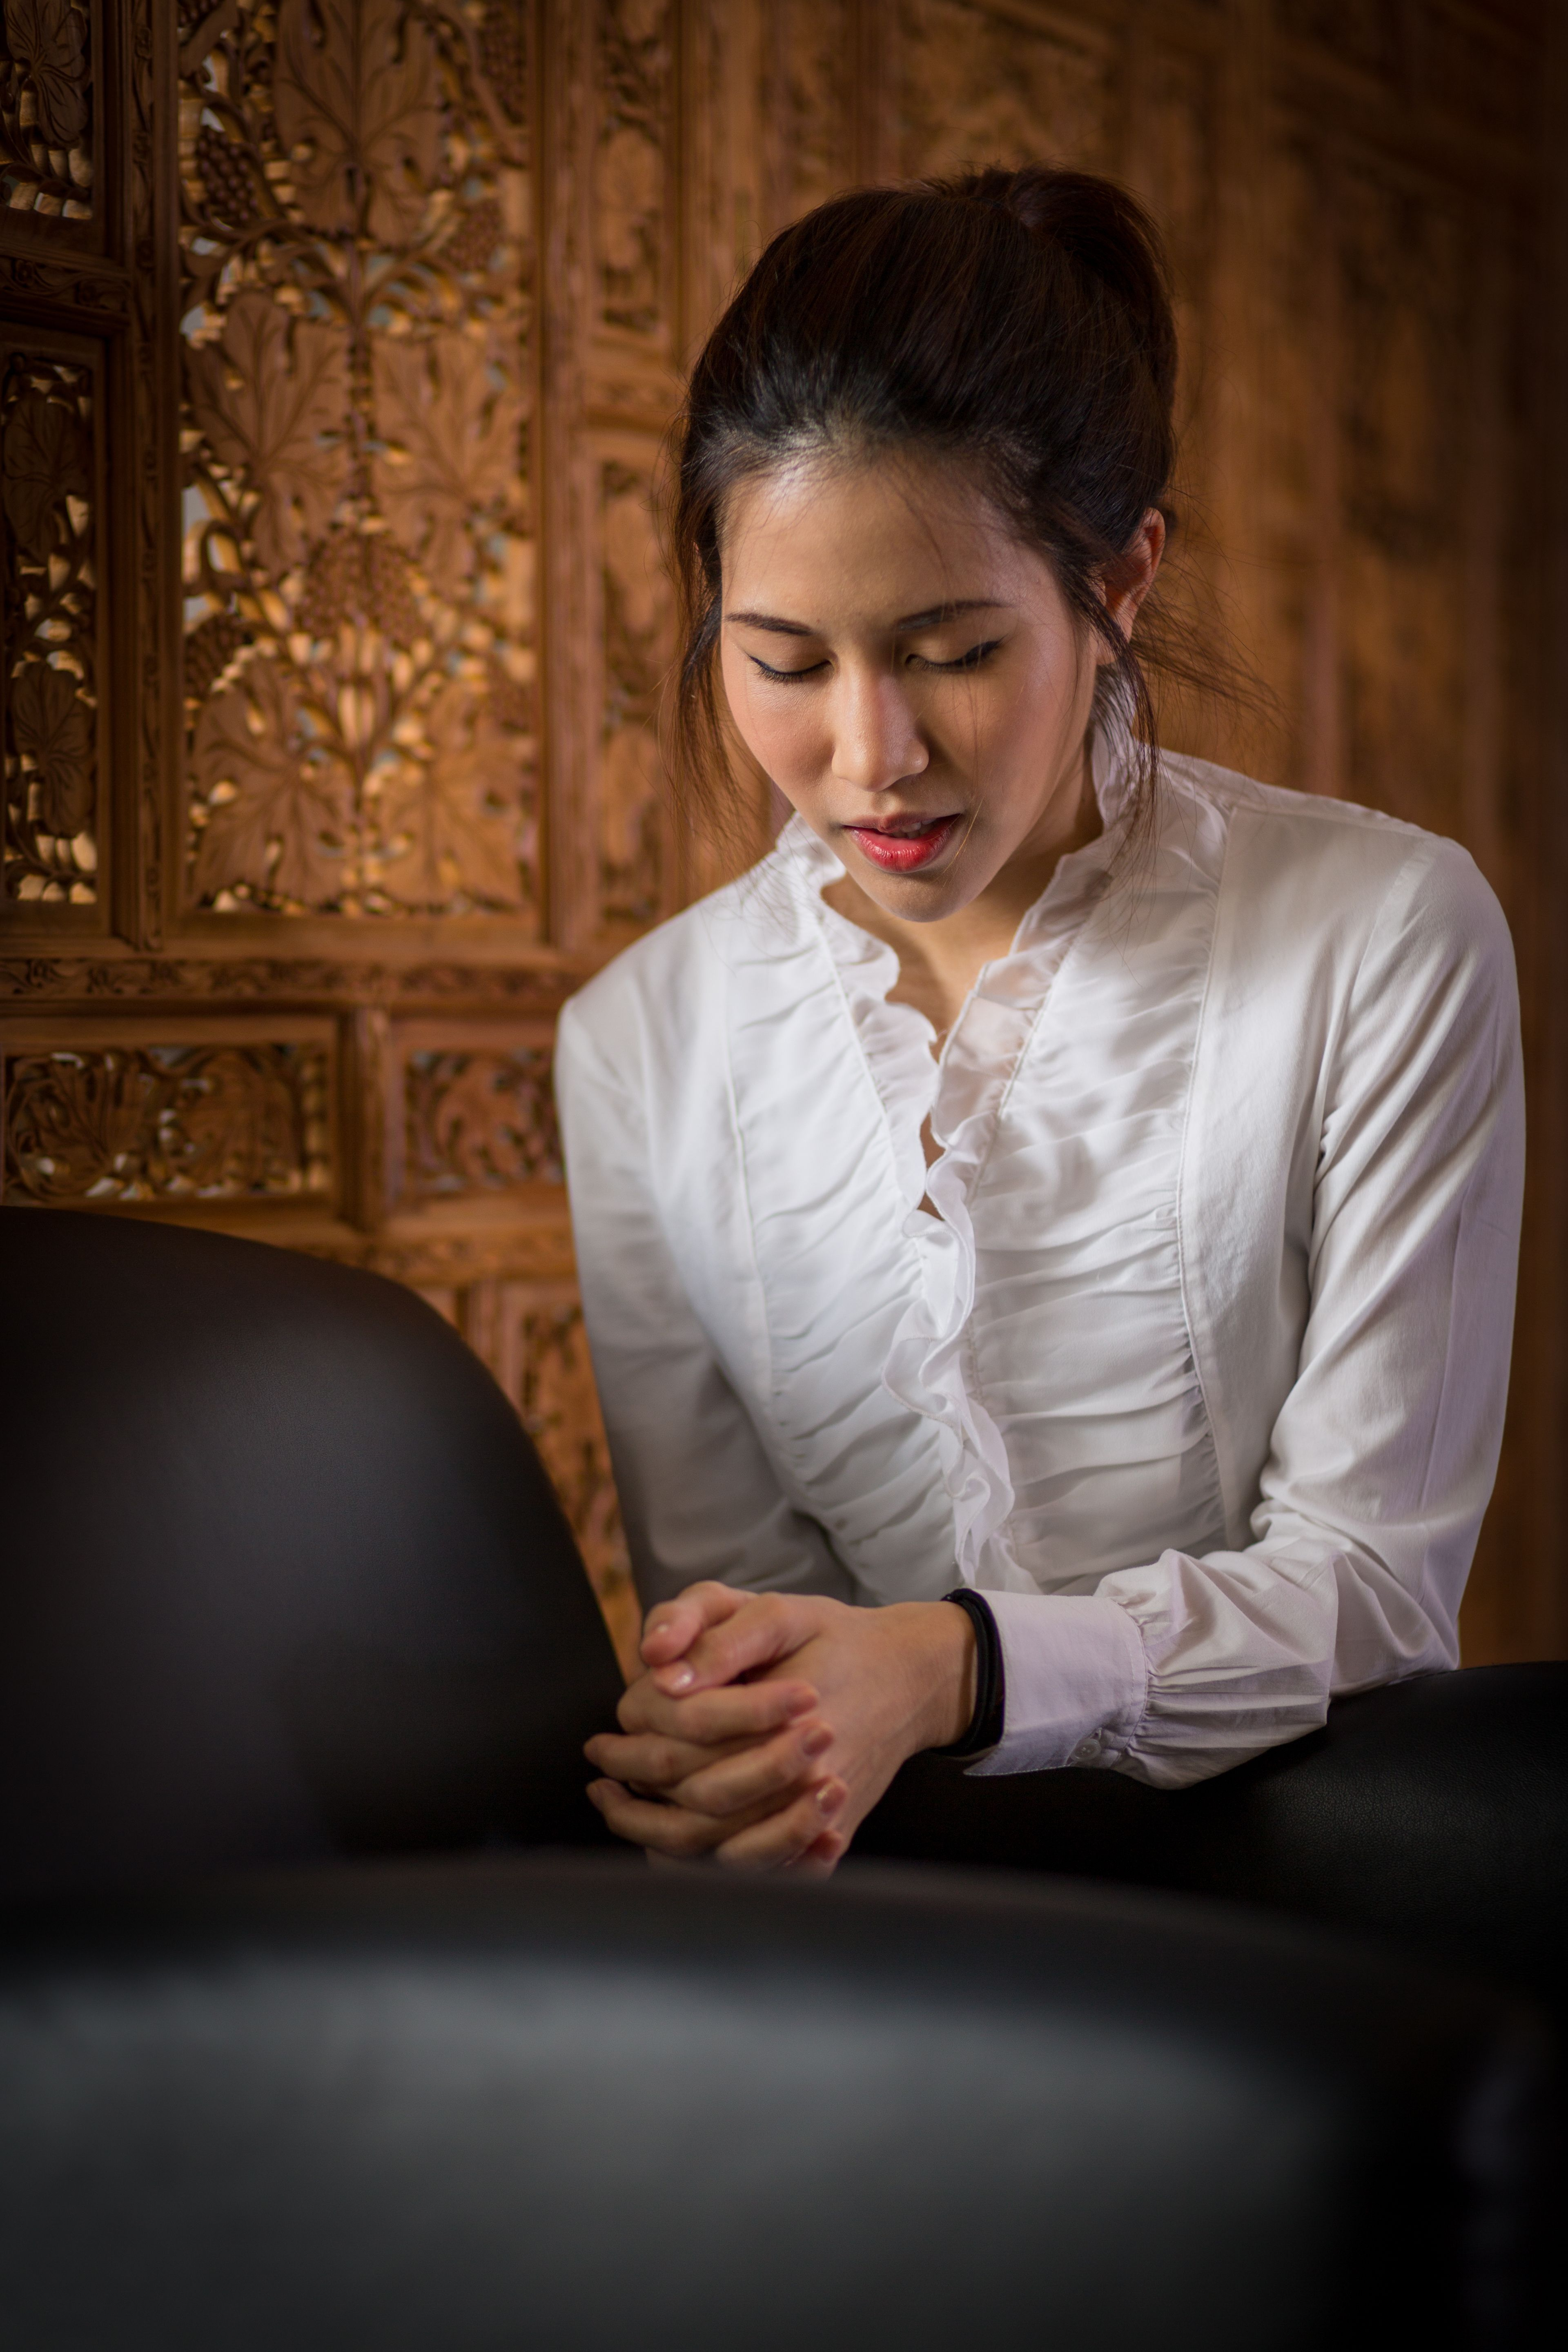 A young woman in Thailand kneels by a chair and prays.